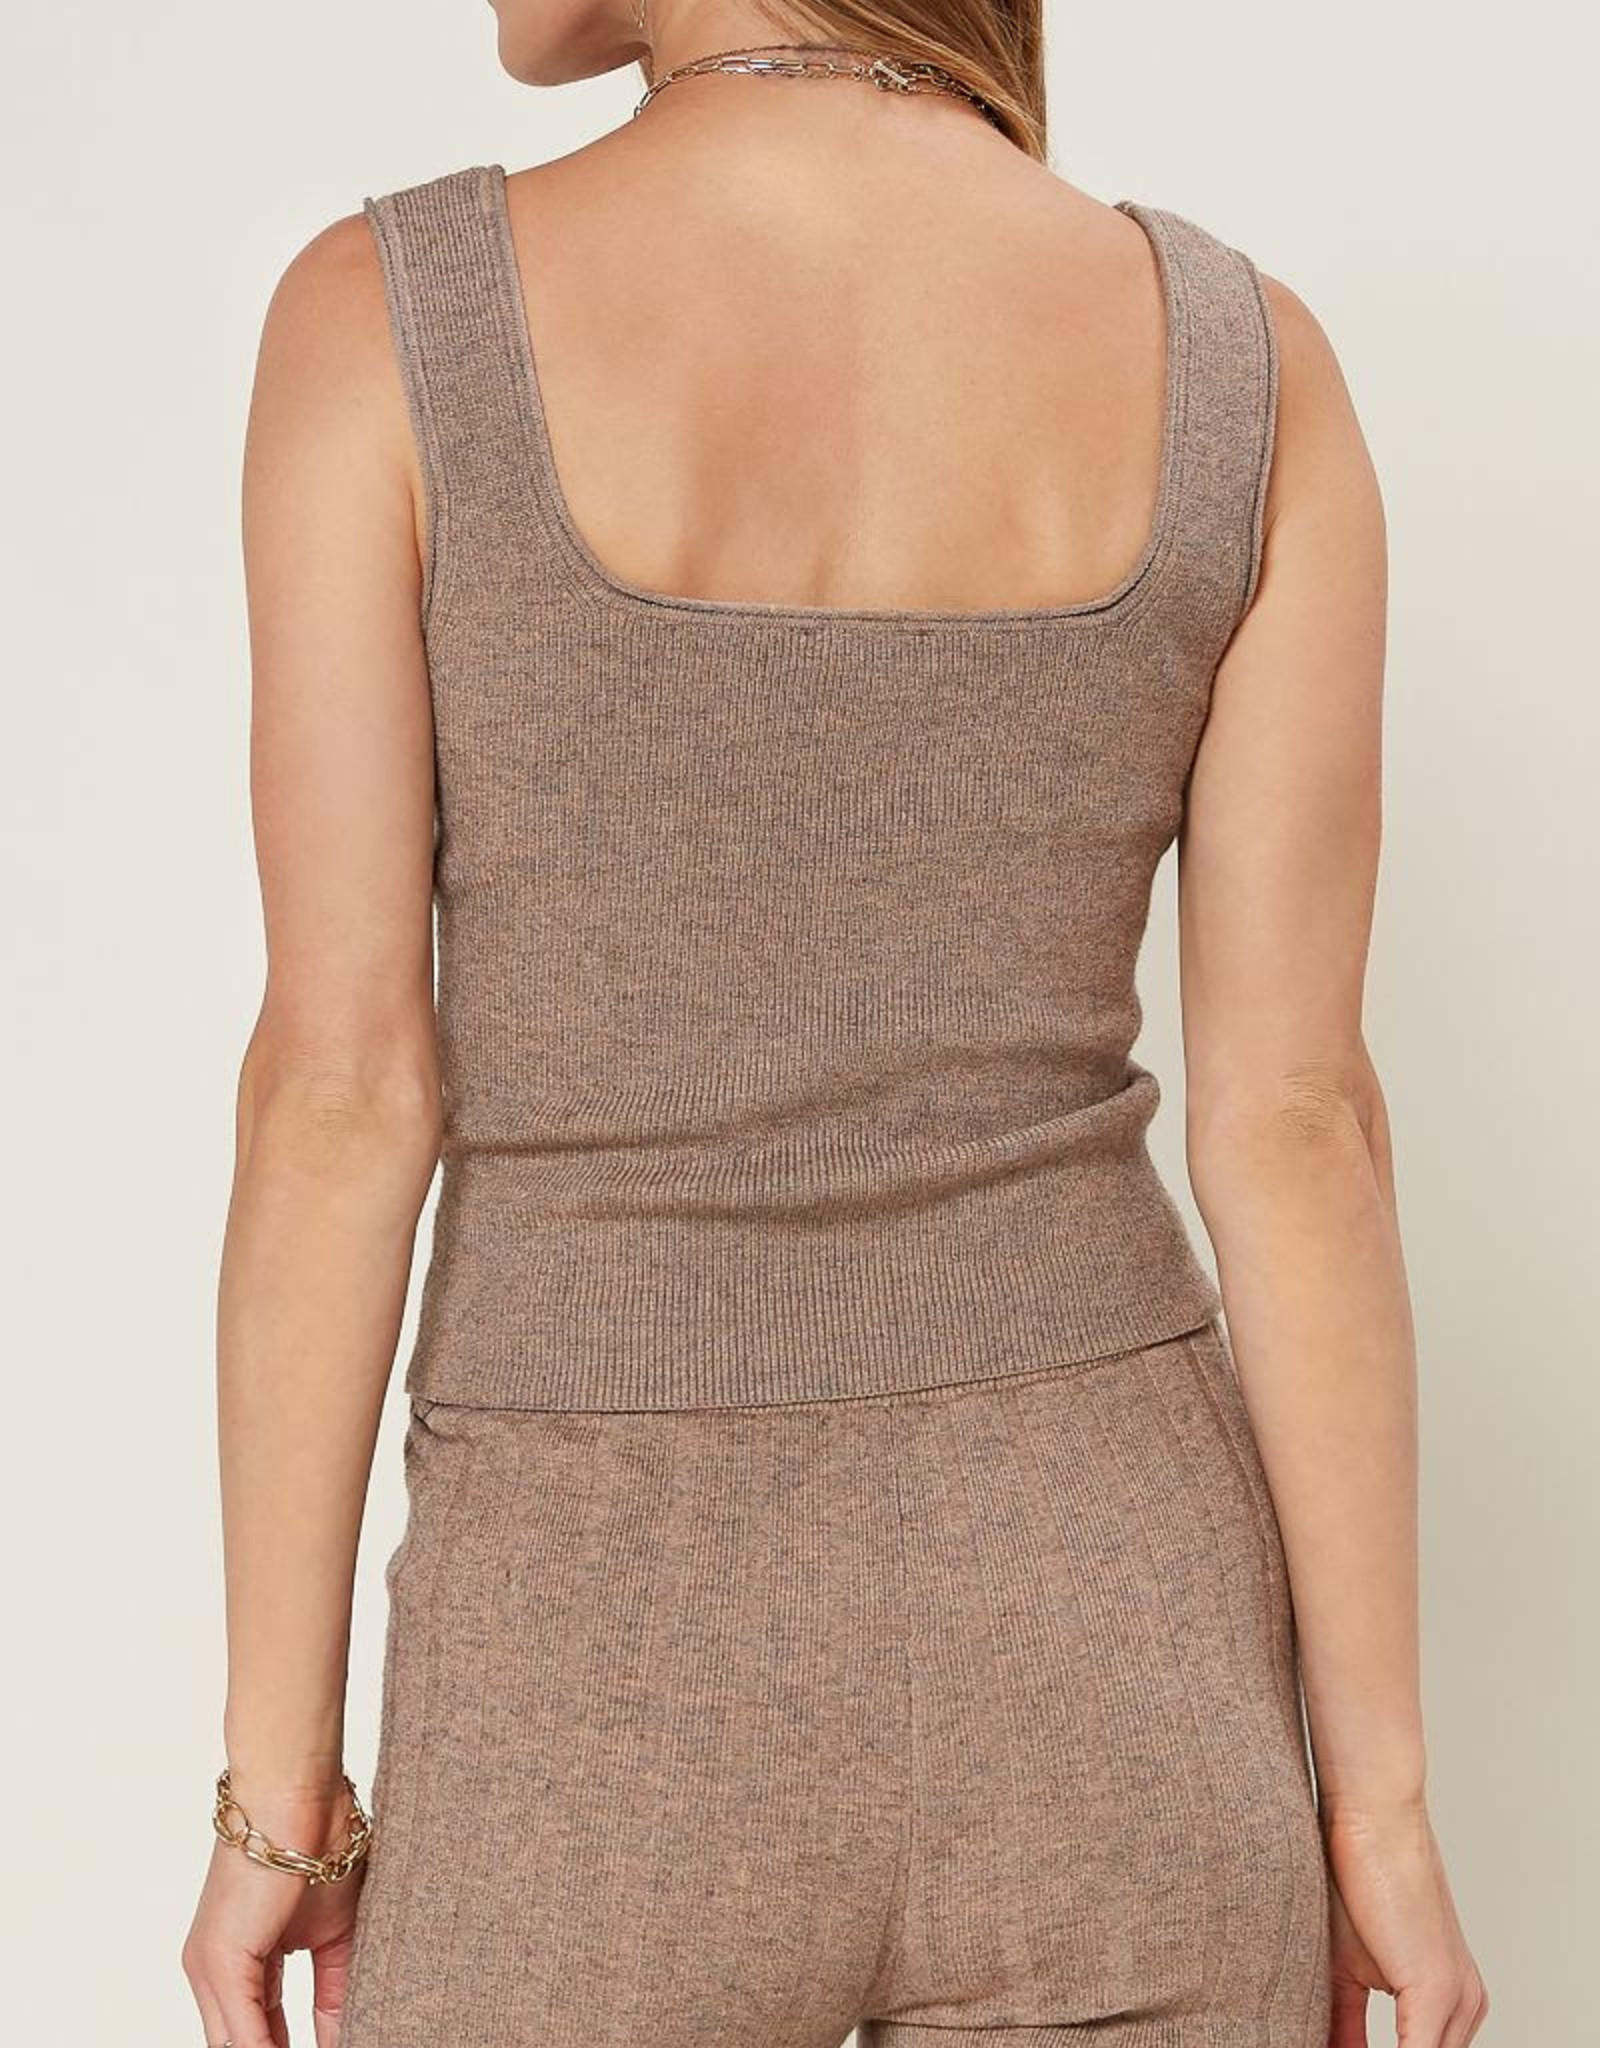 Current Air 2031022 Square Neck Ripped Knit Tank